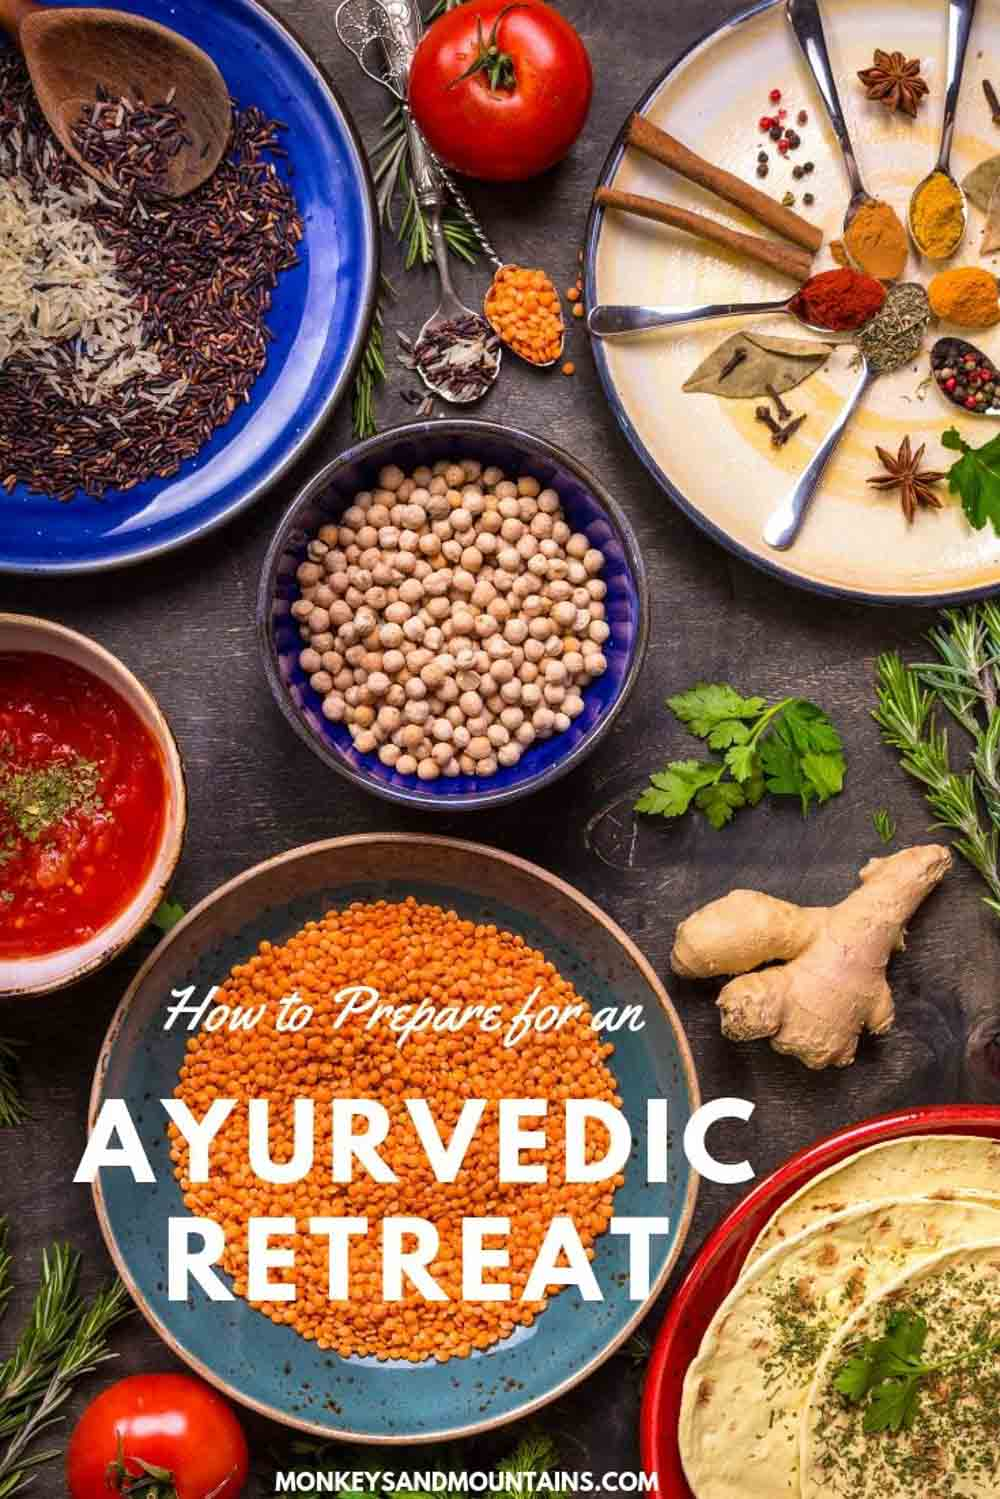 what to expect from an Ayurvedic retreat